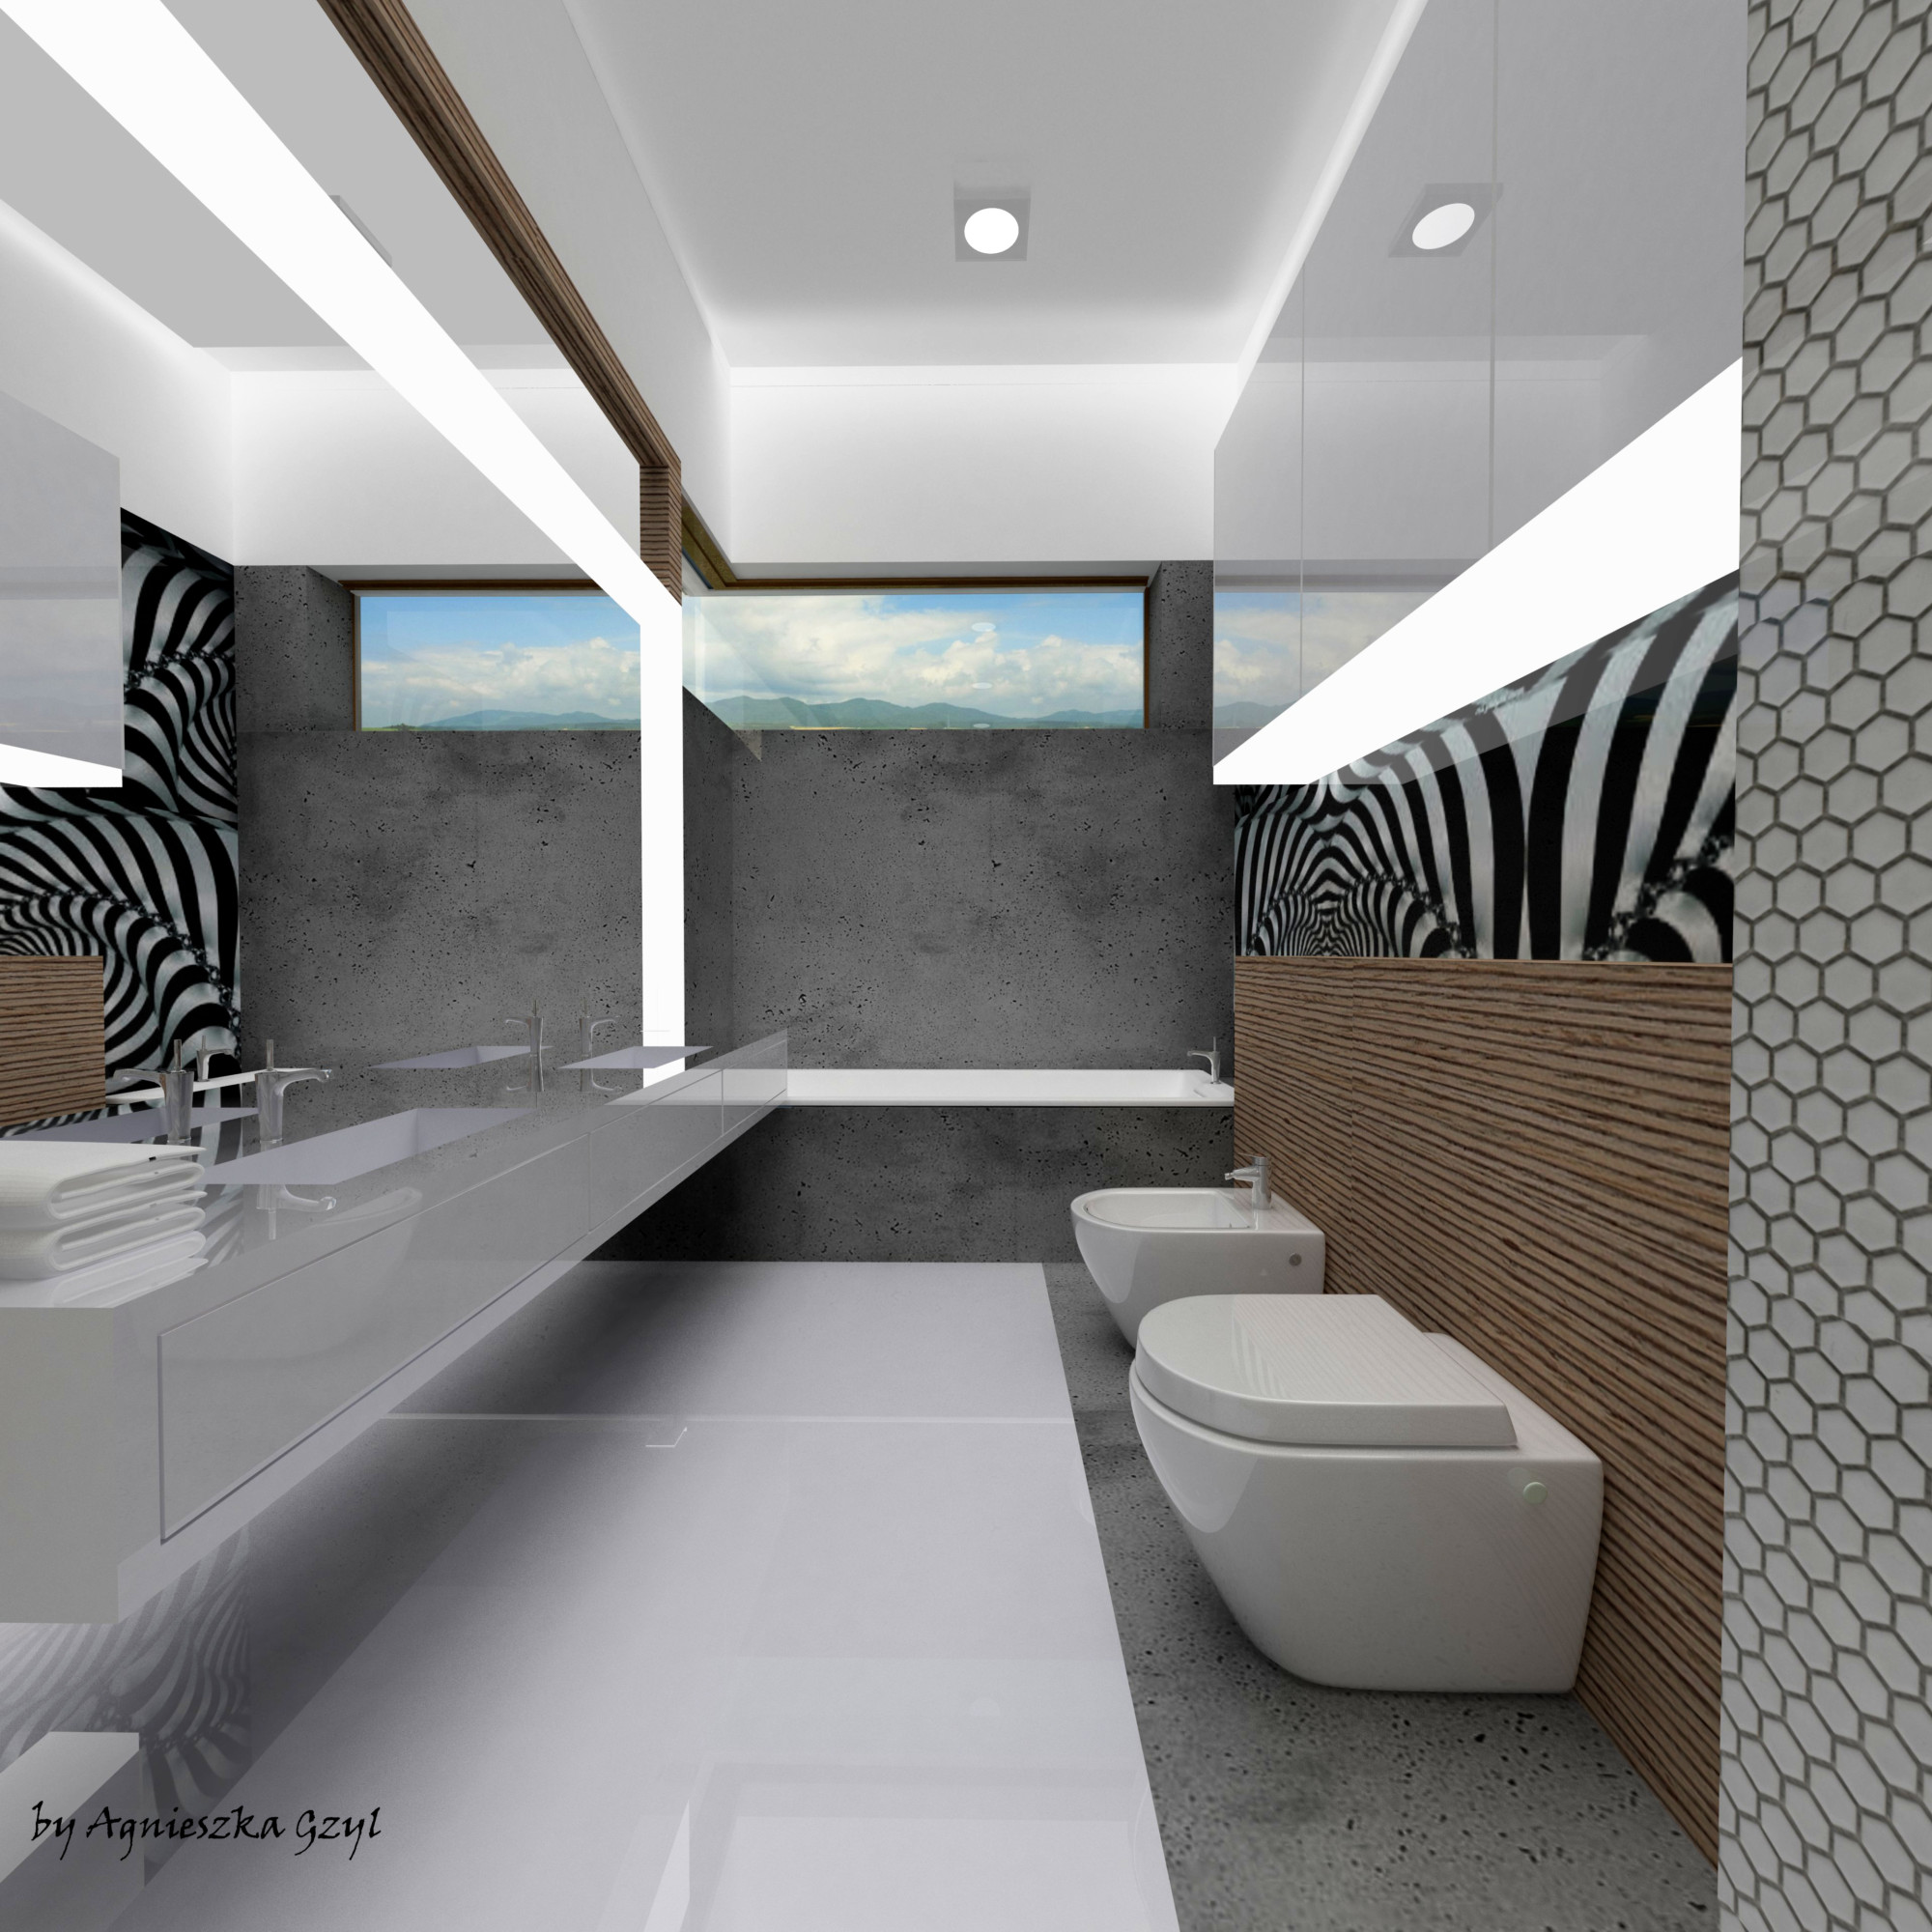 Master Bedroom Bathroom Prize House In The Polish Version Of Building The Dream Tv Show Agnieszka Gzyl Portfolio